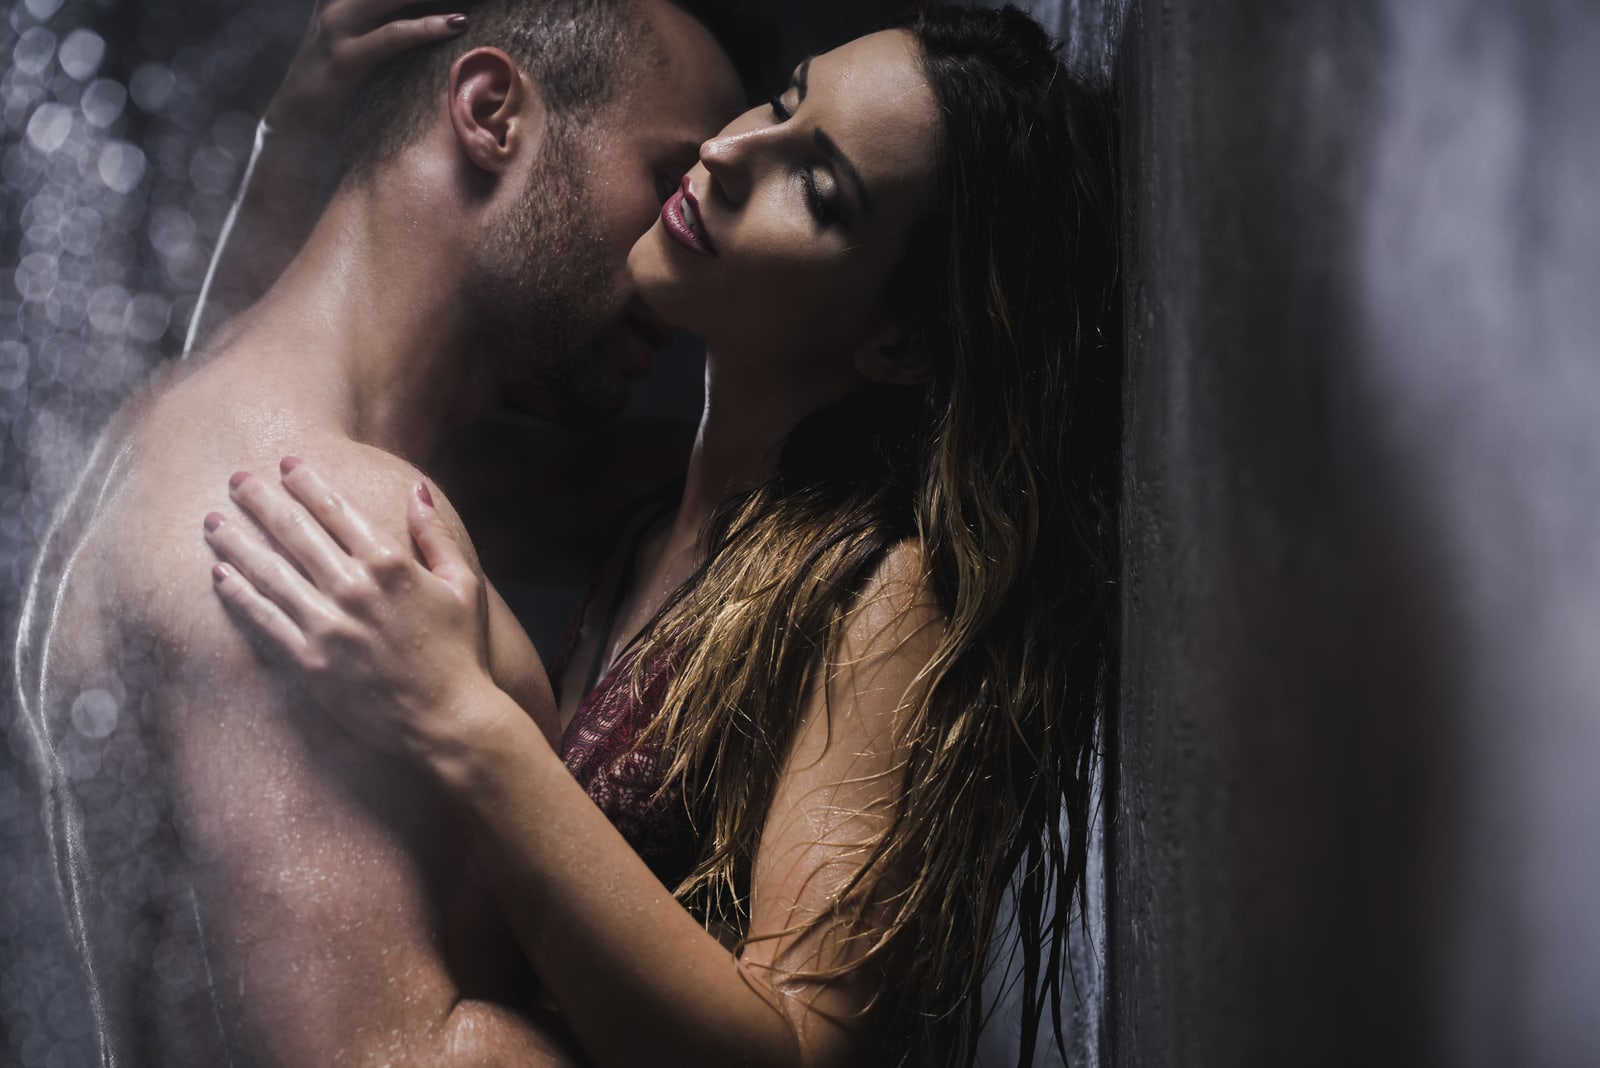 a man kisses a woman in the shower